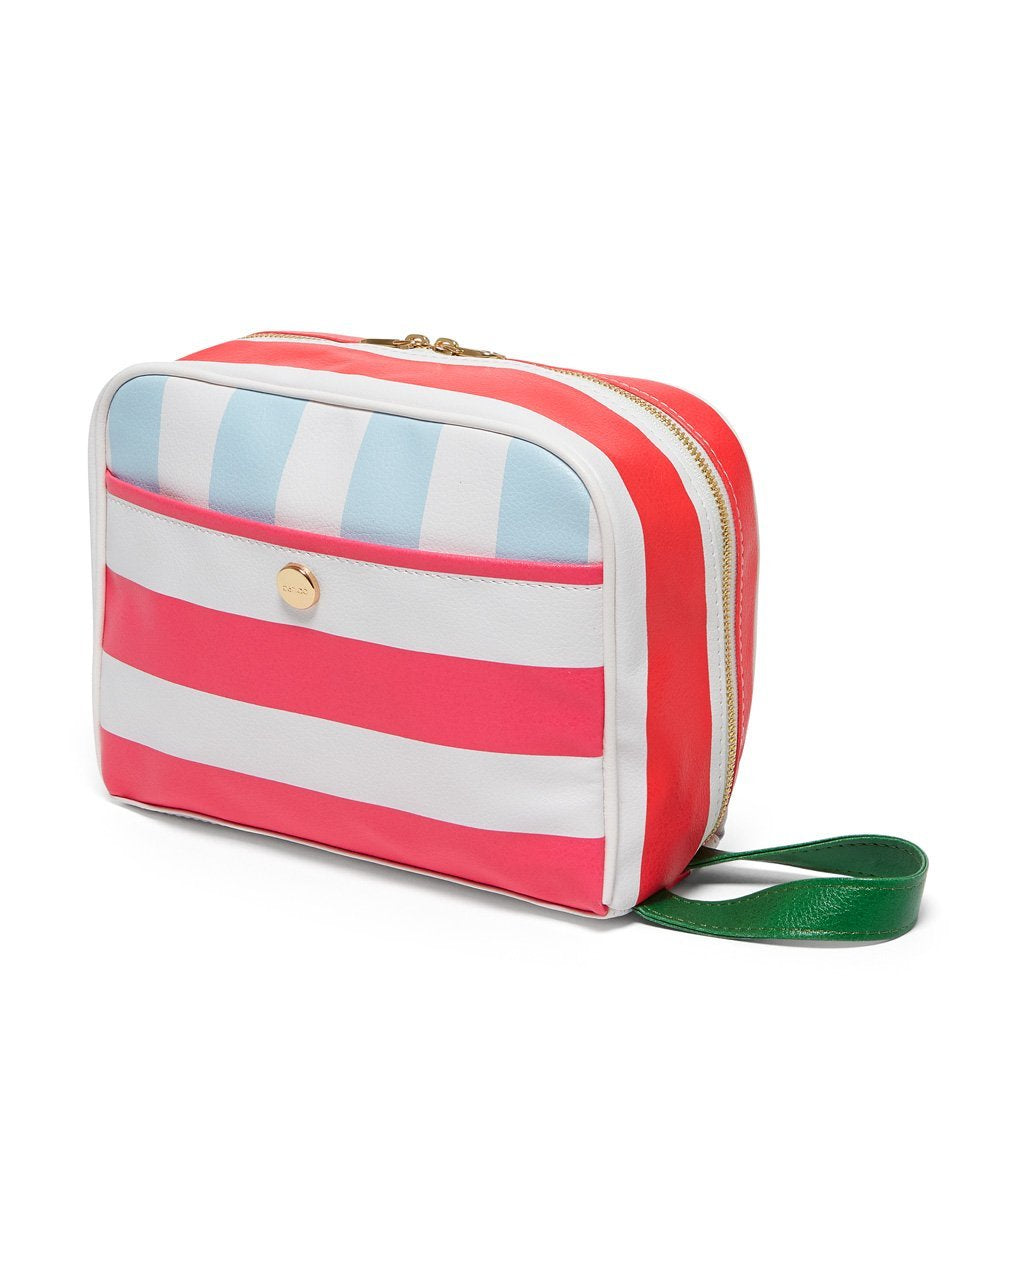 Toiletry bag with nylon exterior including a back pocket and a handle strap